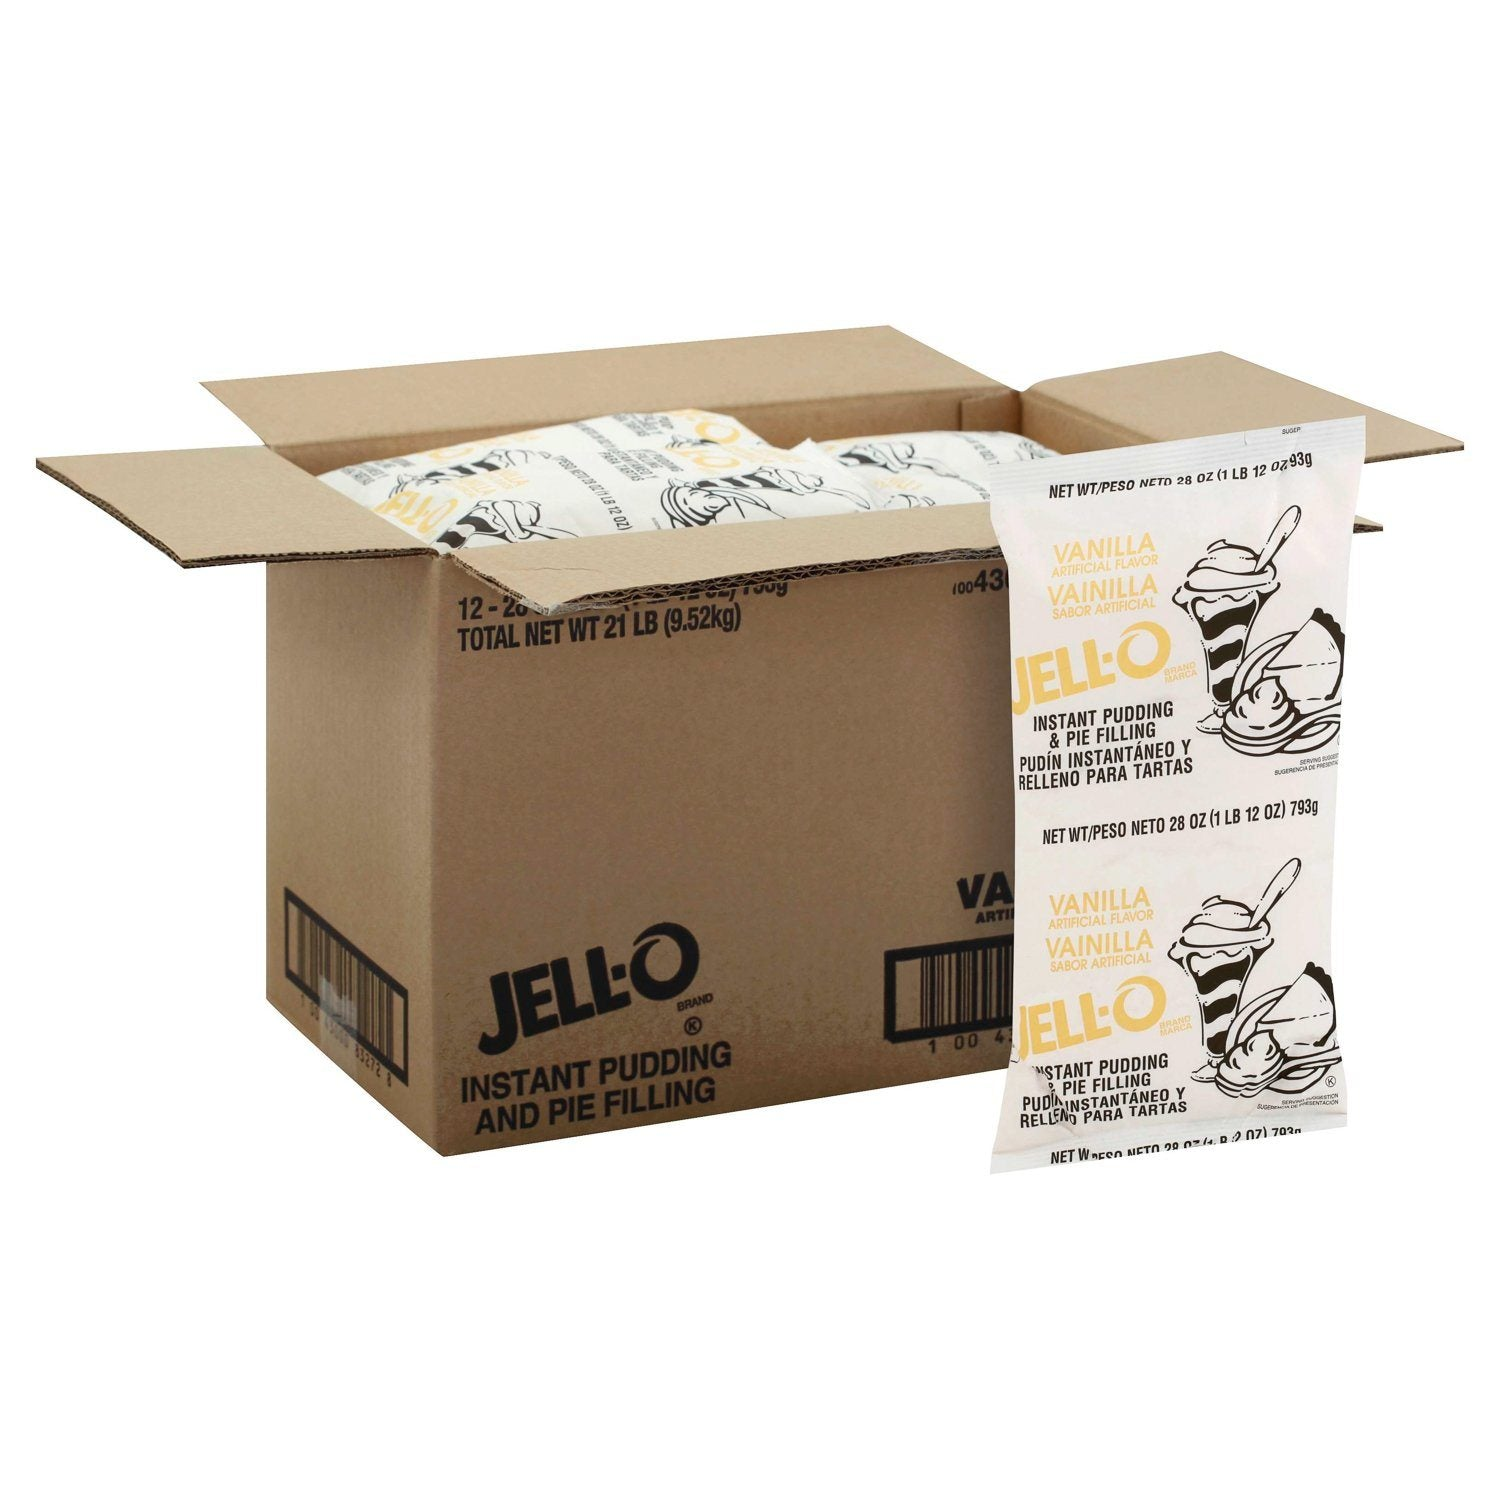 Jell-O Instant Pudding & Pie Filling Mixes Jell-O Vanilla 1.75 lb-12 Count